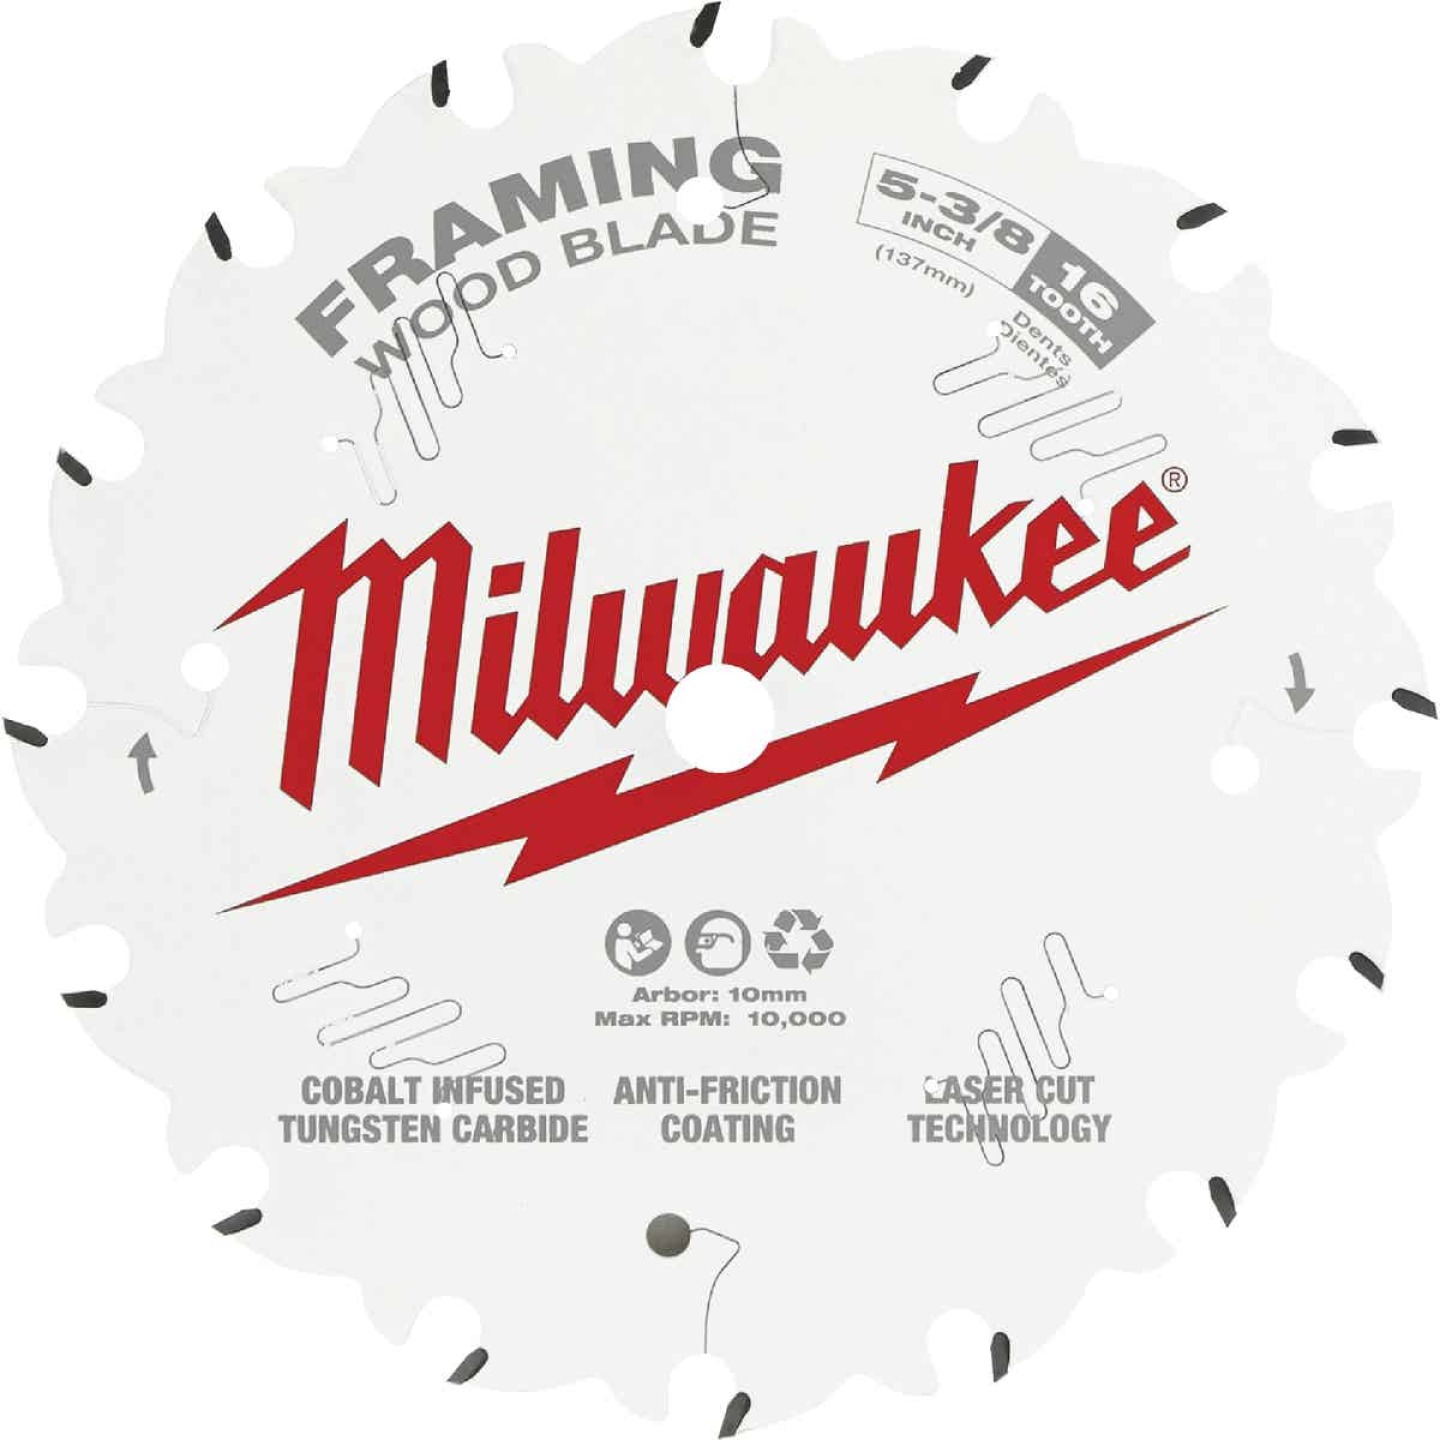 Milwaukee 5-3/8 In. 16-Tooth Framing Circular Saw Blade Image 1